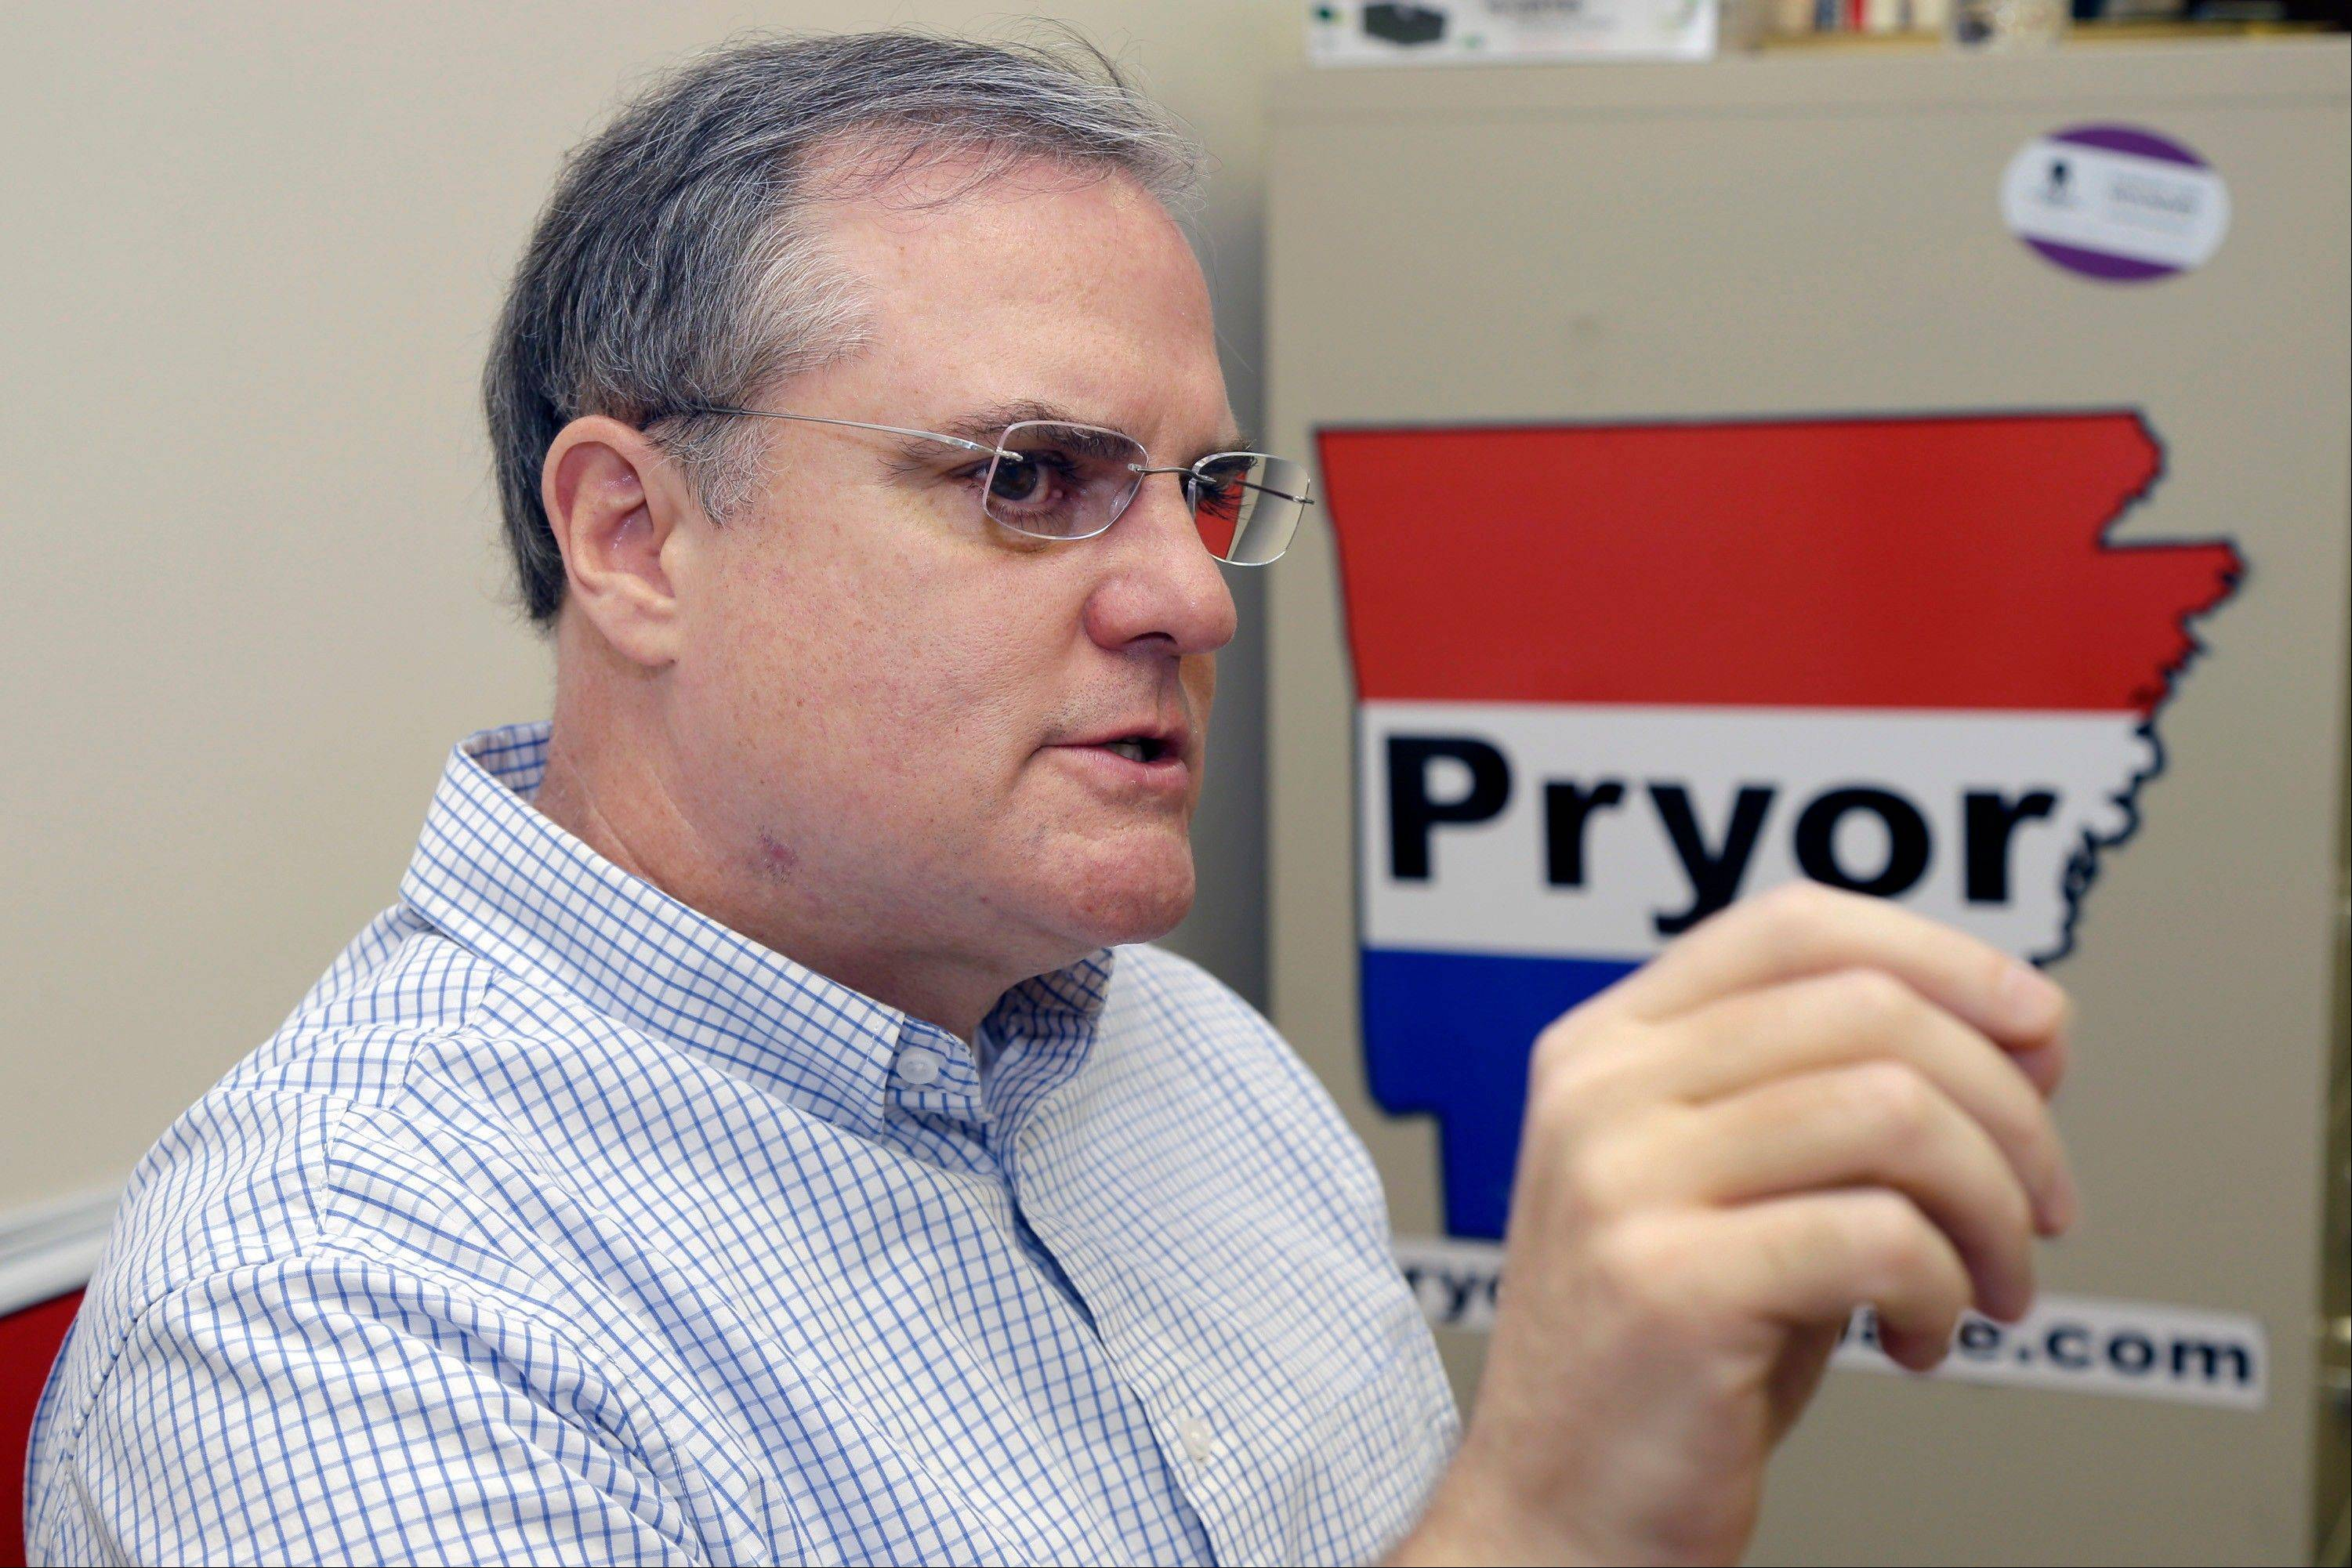 In this file photo taken Aug. 2, 2013, U.S. Sen. Mark Pryor is interviewed at his campaign office in Little Rock, Ark. Pryor is part of a string of Senate incumbents and challengers with long family ties who could help determine whether Democrats maintain their control of the Senate in the 2014 elections.